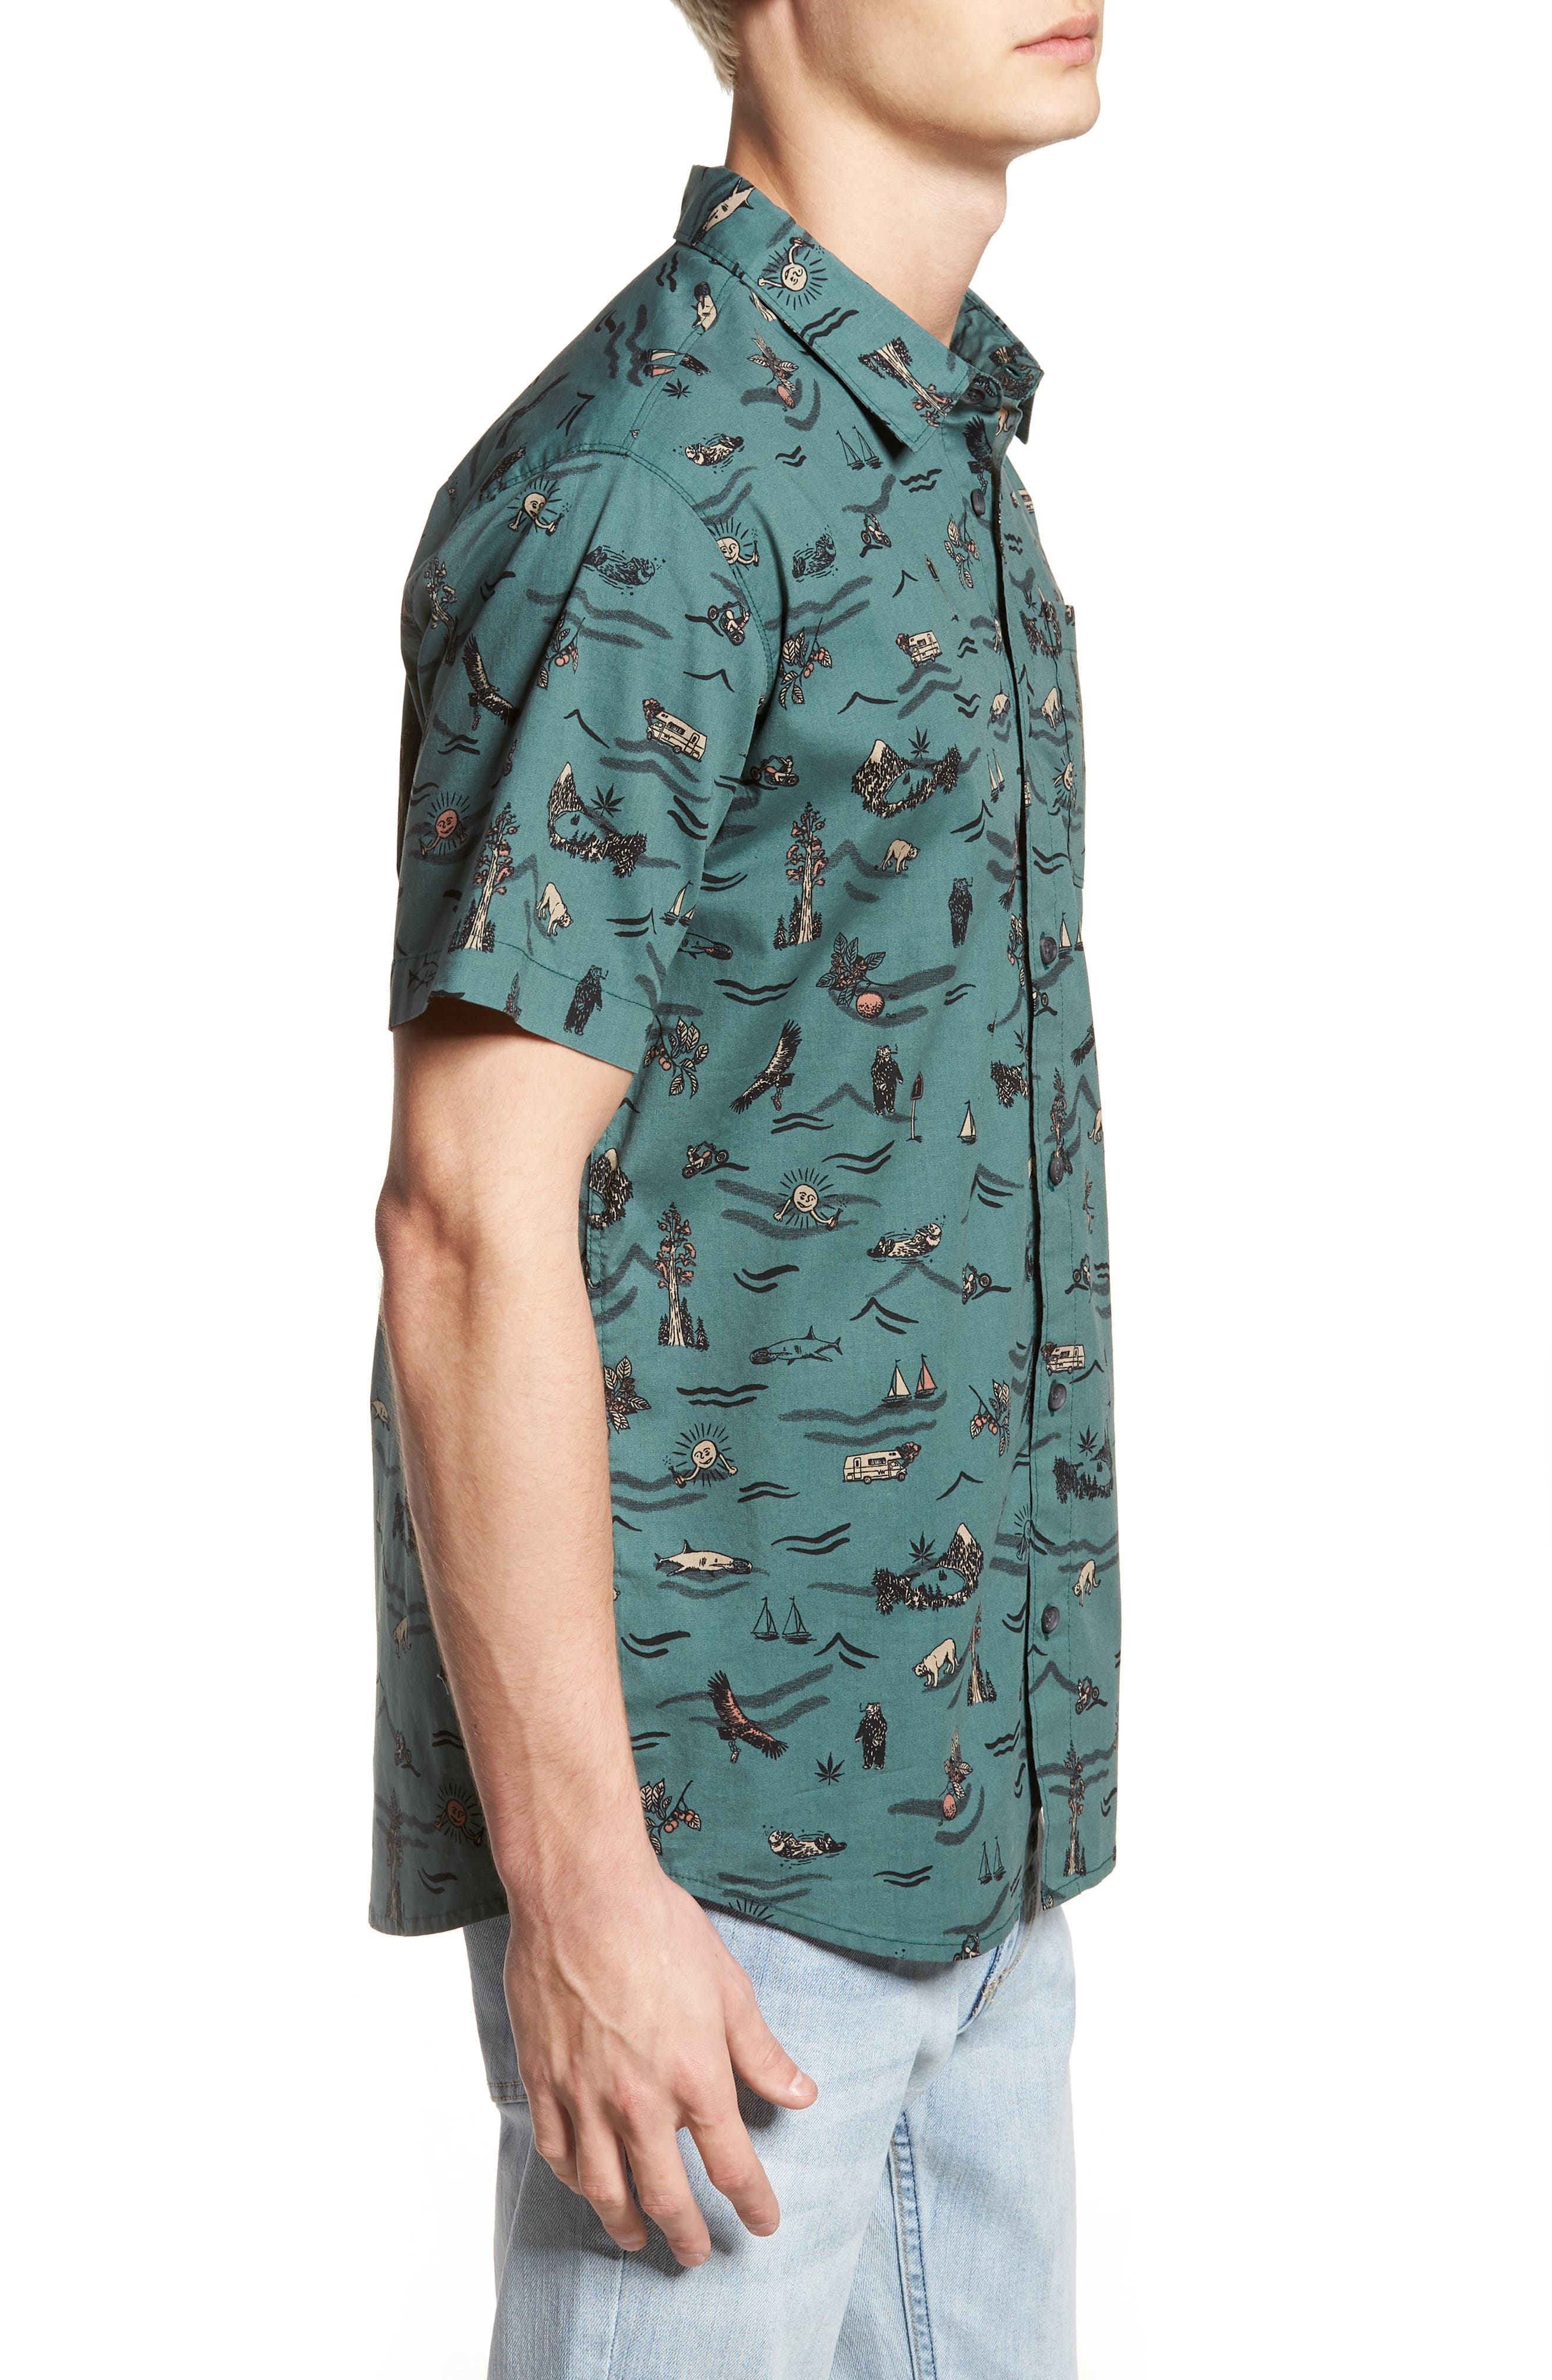 Squawk Short Sleeve Shirt,                             Alternate thumbnail 3, color,                             300